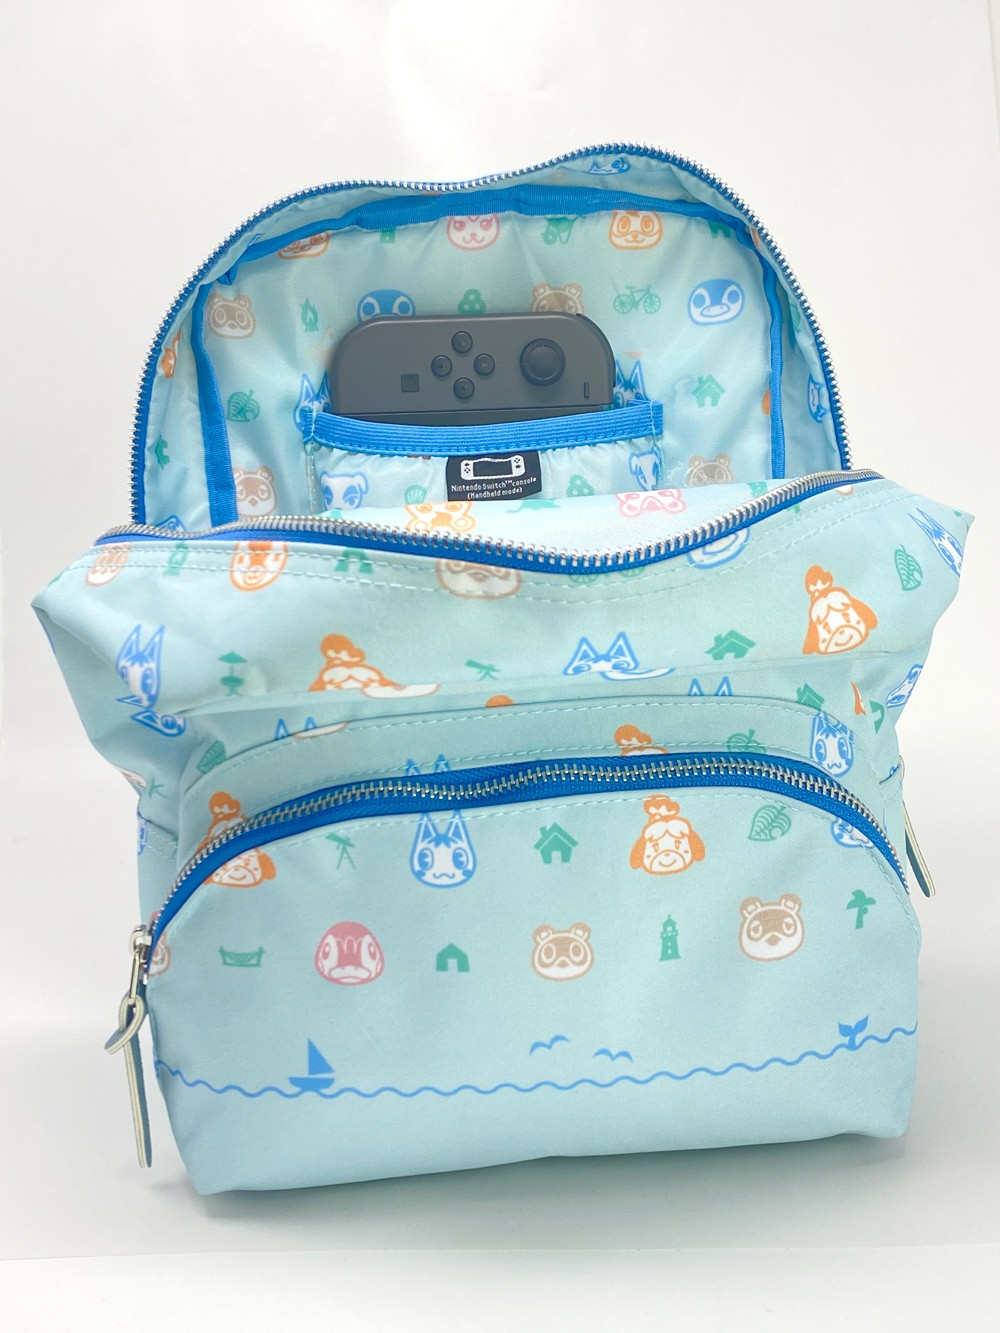 Controller Gear Animal Crossing: New Horizons Bag & Mini Backpack for Women, Girl's, Kids. Nintendo Switch, Lite Case, Accessories, Travel Bag, Carrying Case. Outdoor Pattern - Nintendo Switch